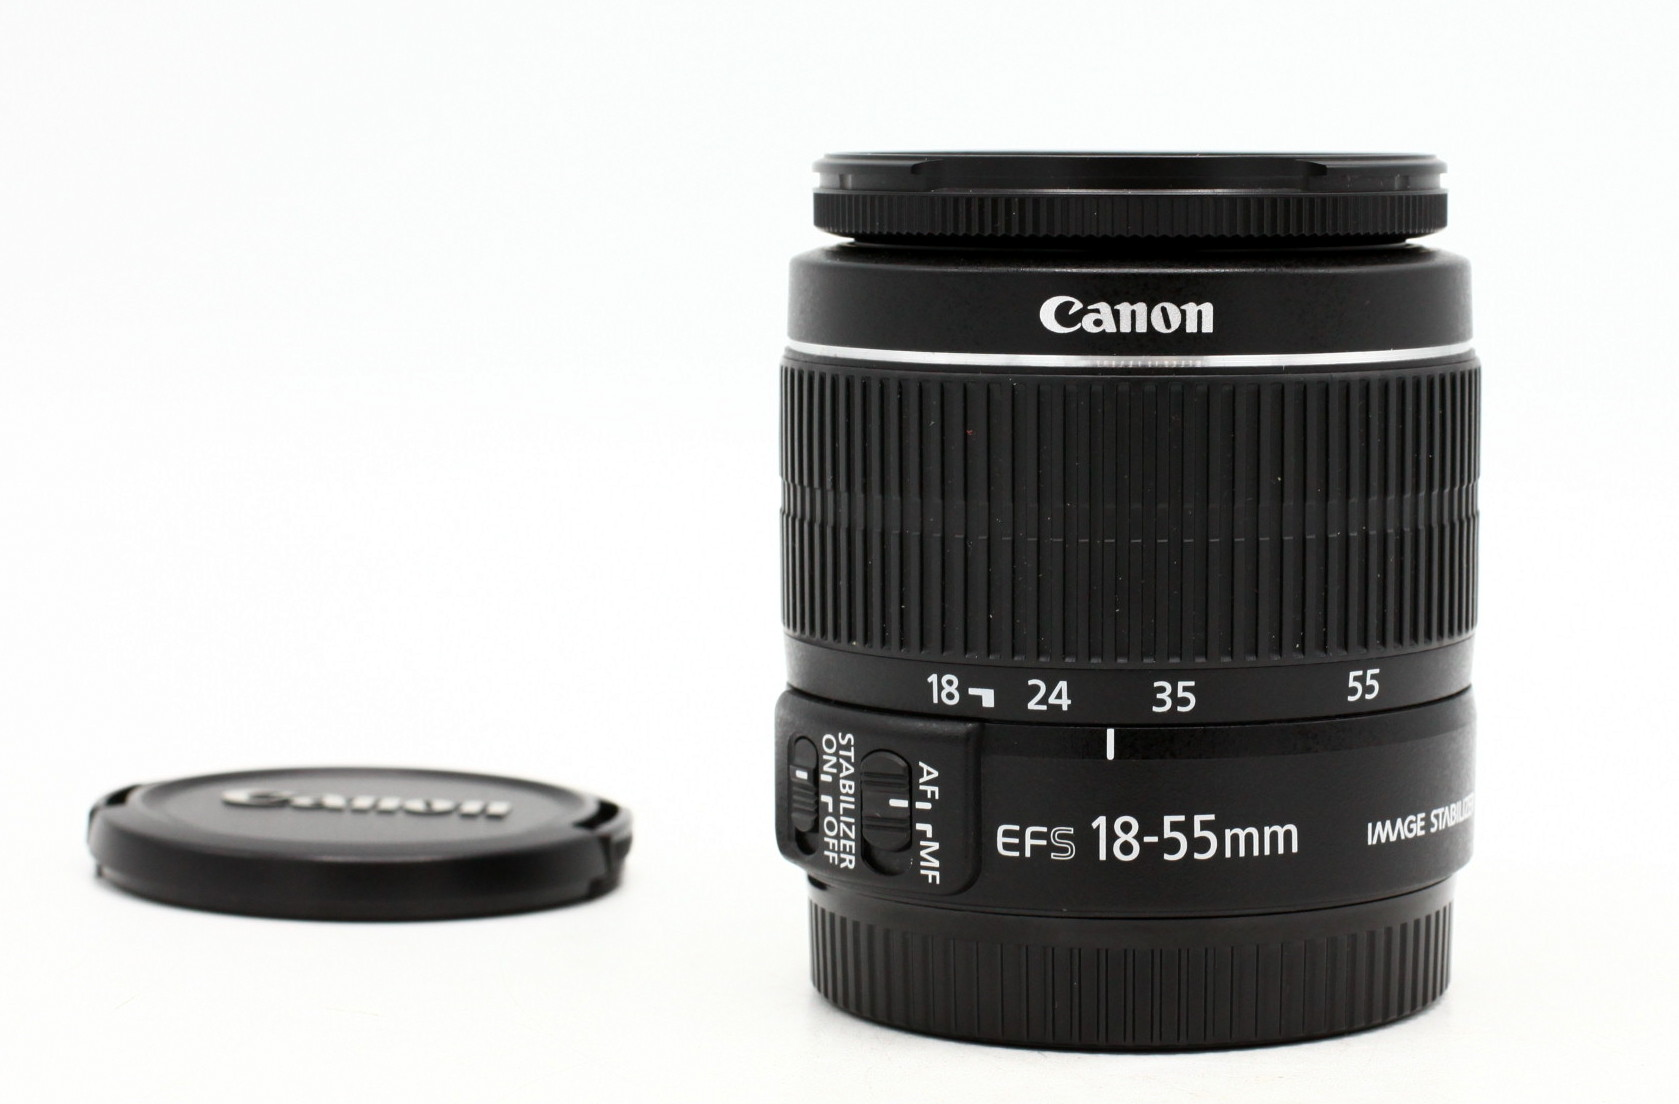 Canon EF-S 18-55mm IS II F/3.5-5.6 occasion